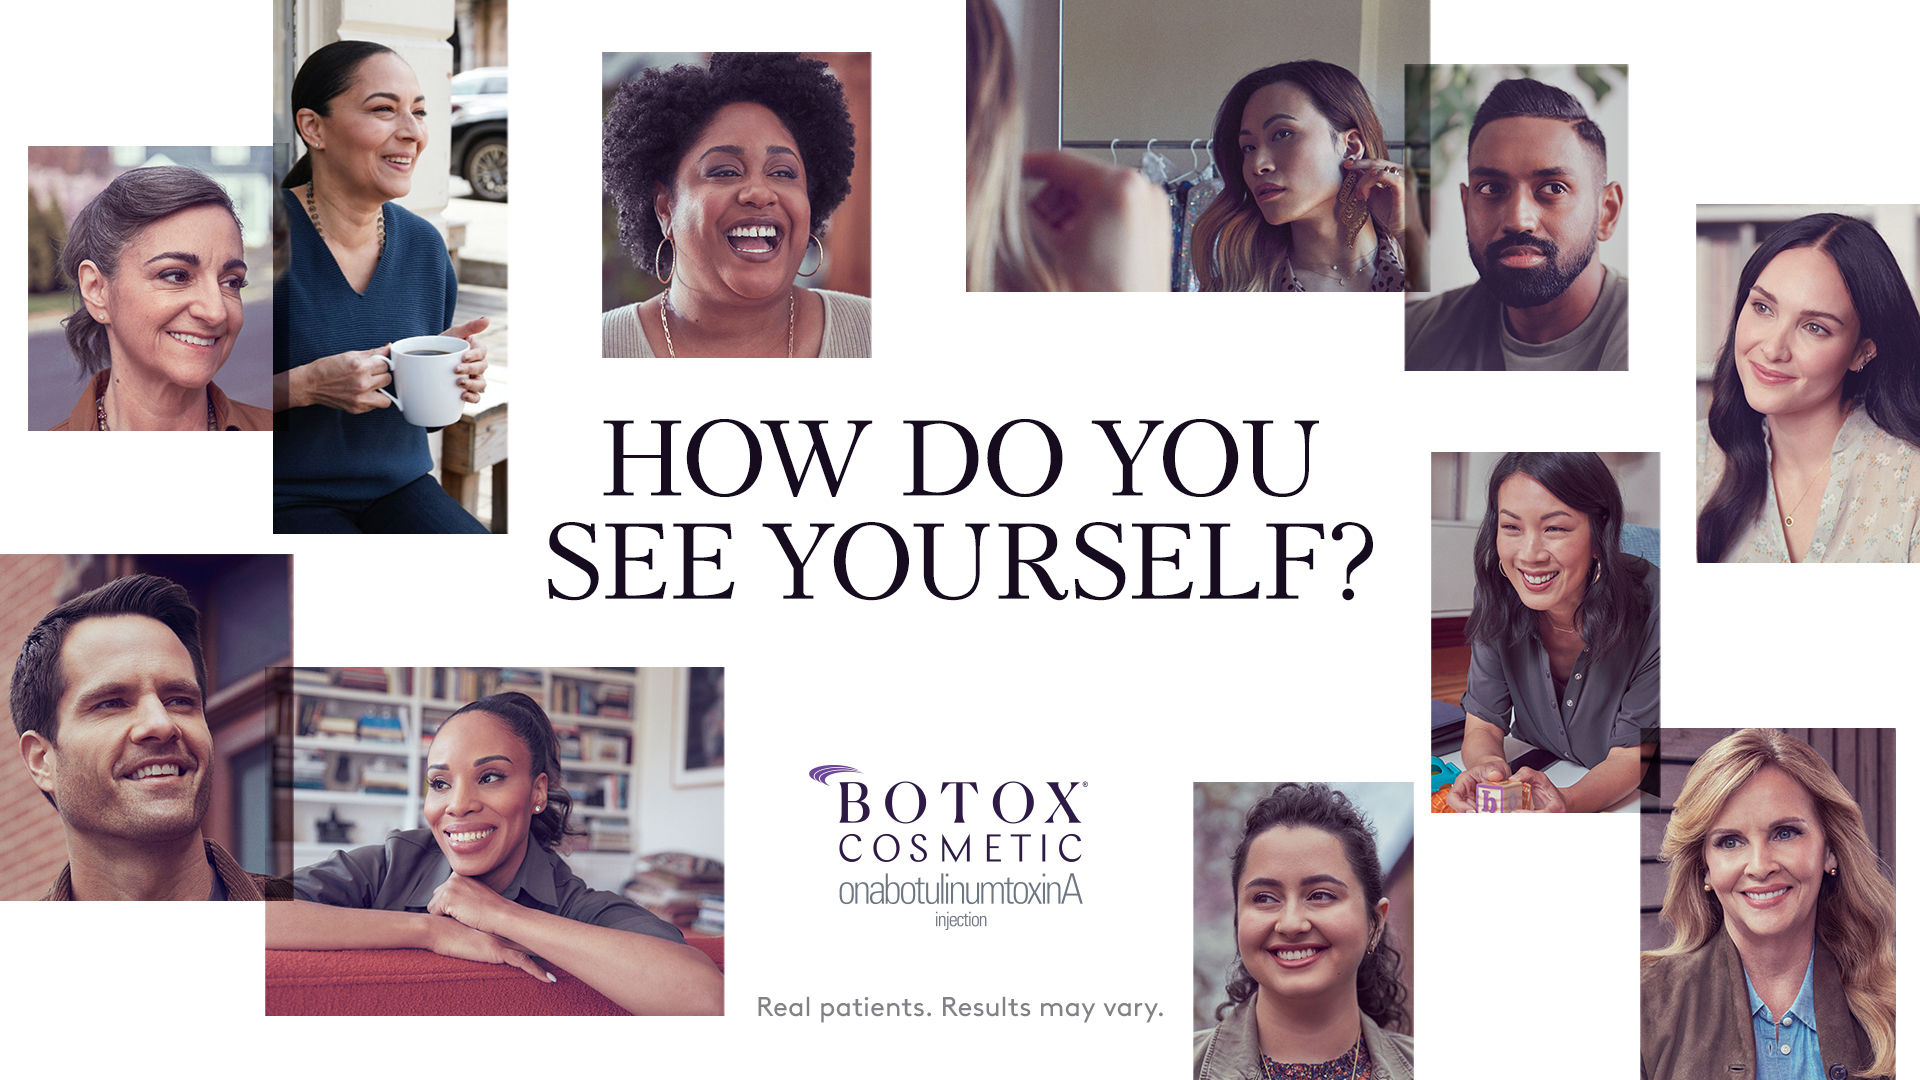 See Yourself, A New Campaign from Allergan Aesthetics